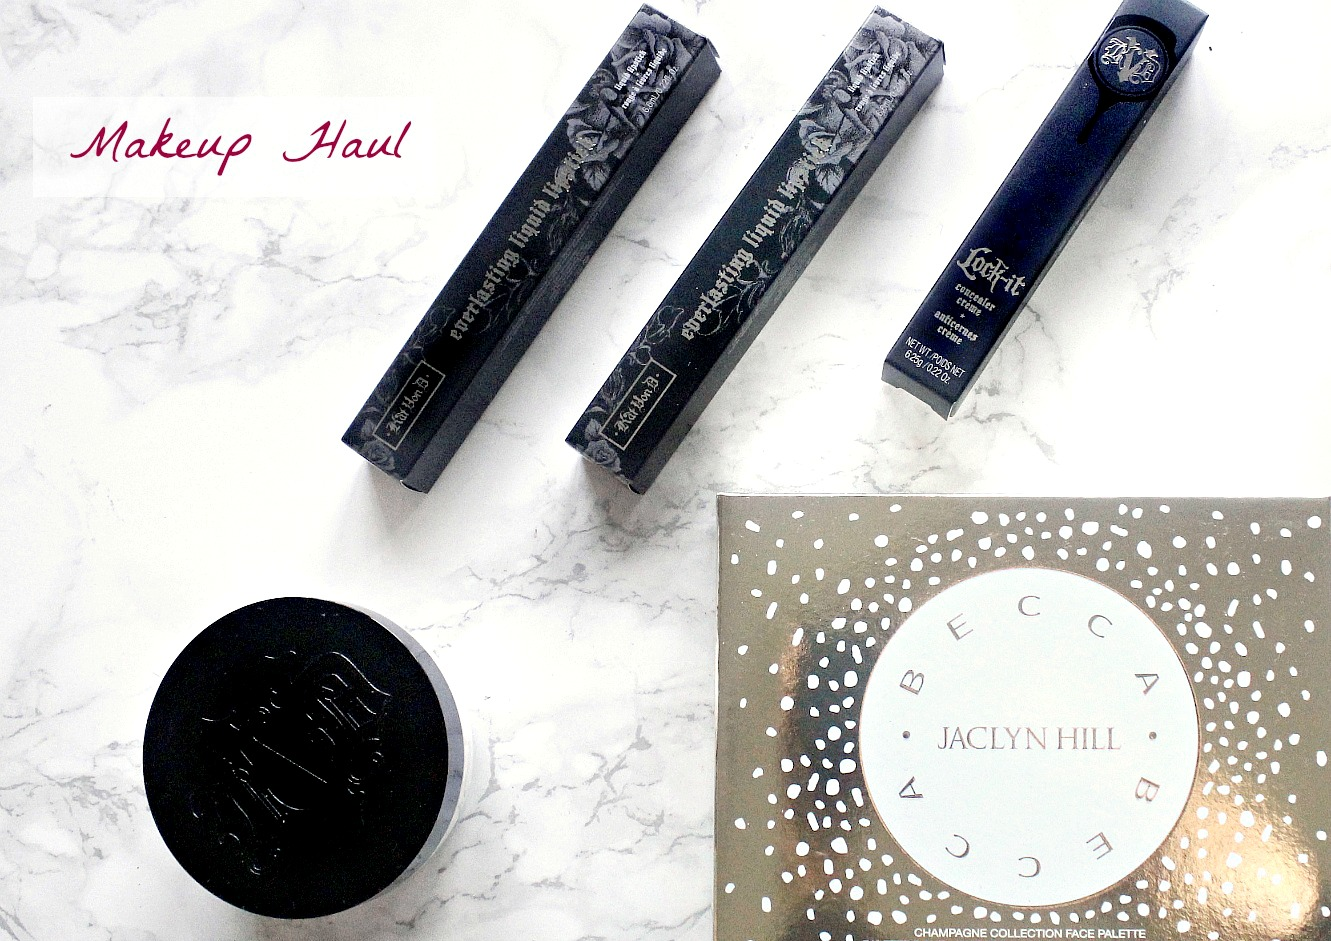 becca and kat von d haul uk